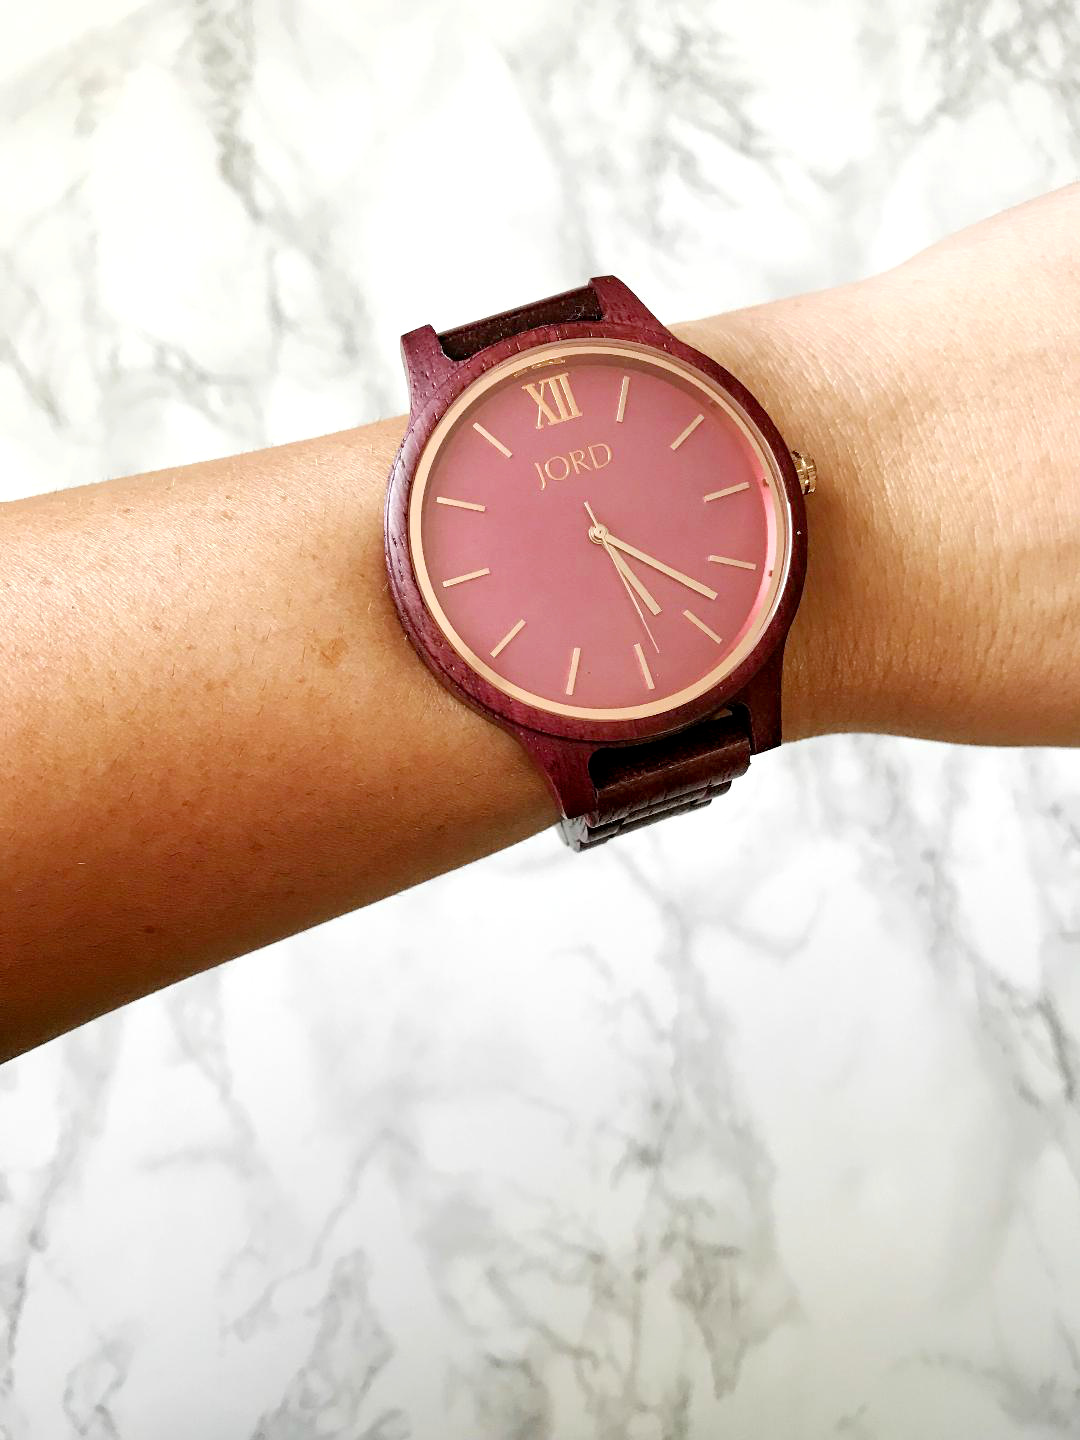 STH JORD Purpleheart & Plum Watch